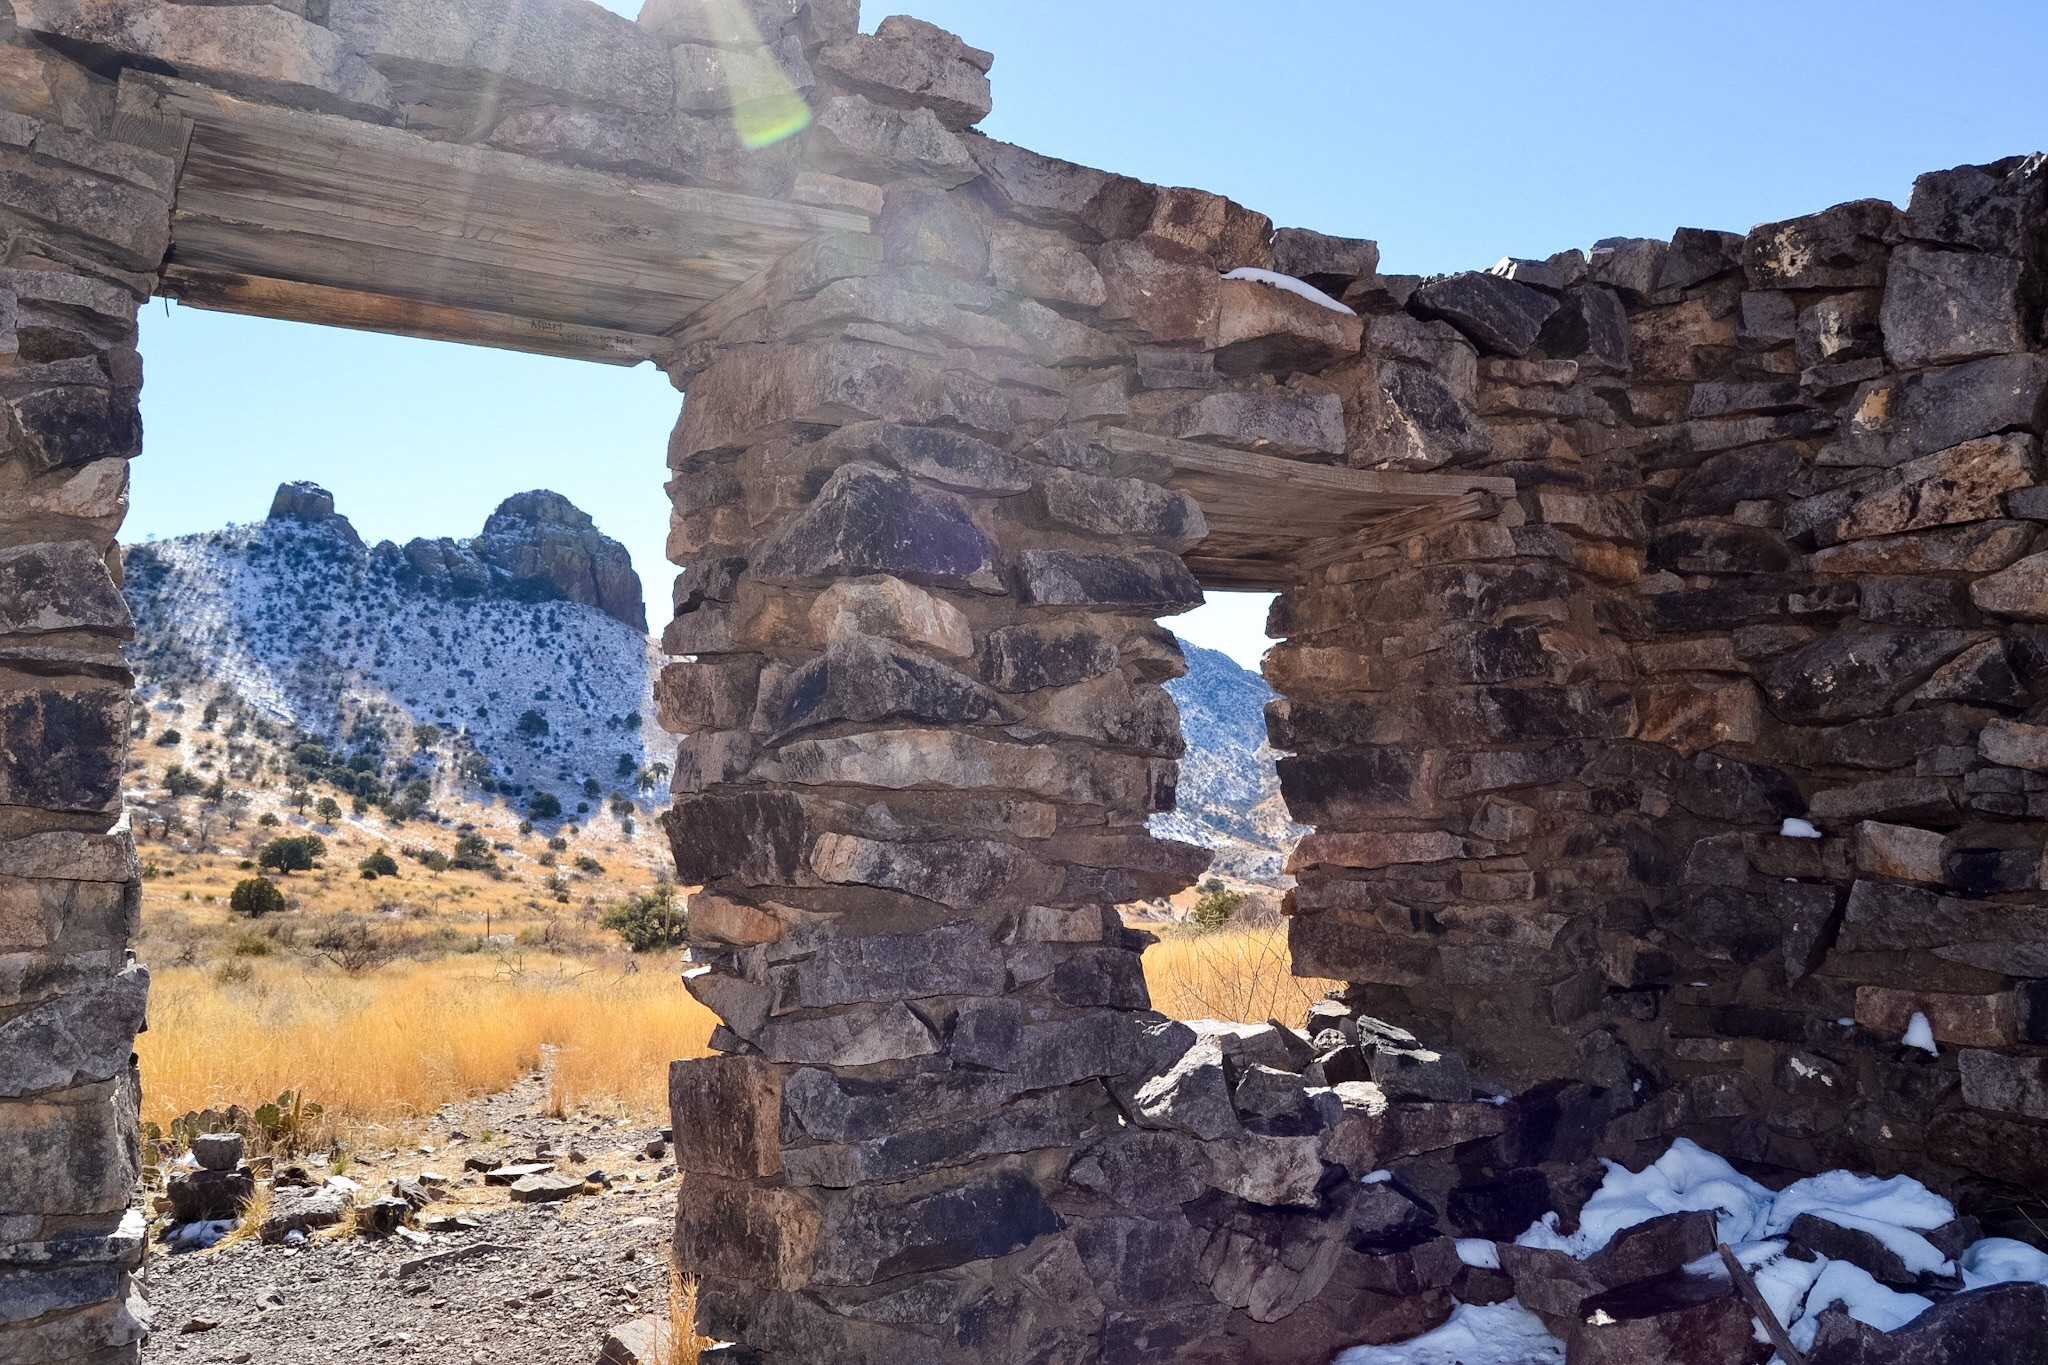 An old outpost in Bar Canyon, Organ Mountains